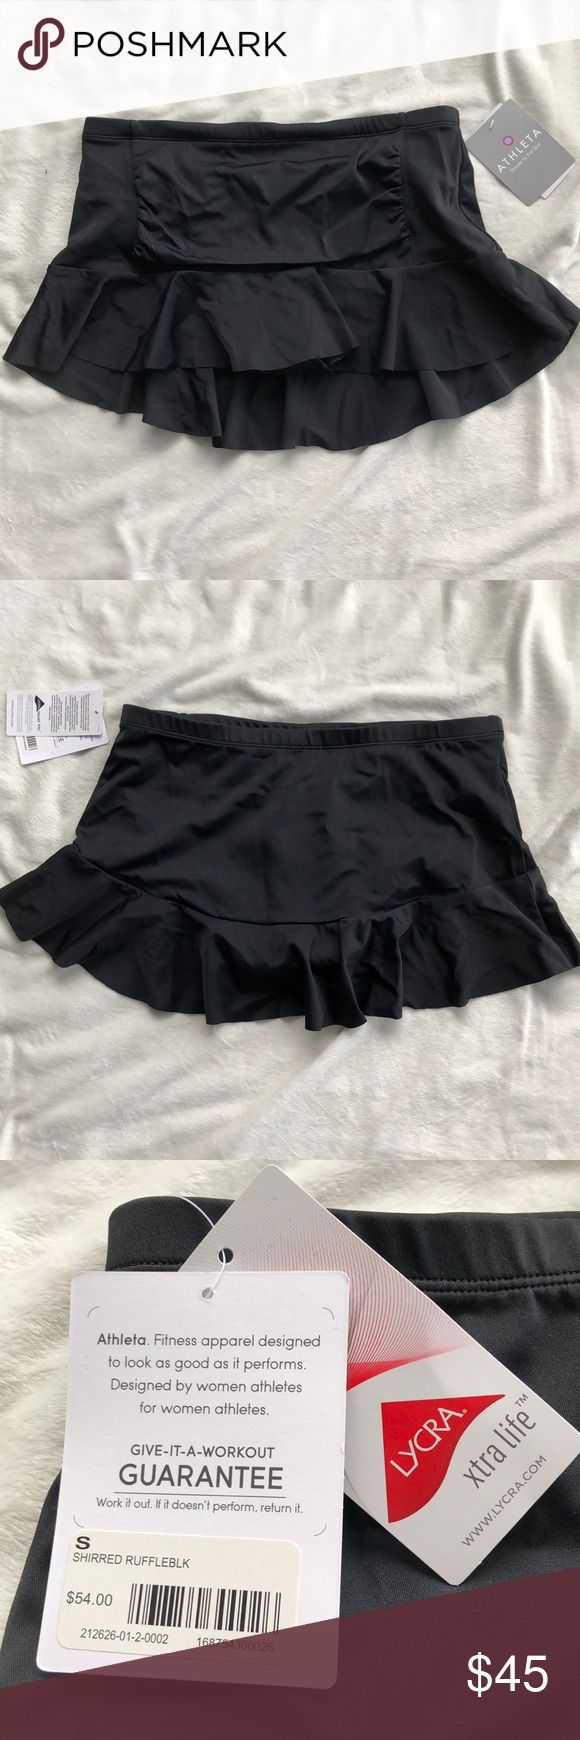 """NWT Athleta Shirred Ruffle Swim Skirt NWT Athleta Shirred Ruffle Swim Skirt.  Color Black. Size Small, Semi- Fitted, Outseam 10.5"""".  NEW With Tags, Excellent, Flawless Condition.  ⚡️Fast Shipping 🚫No Trades Athleta Swim Bikinis"""